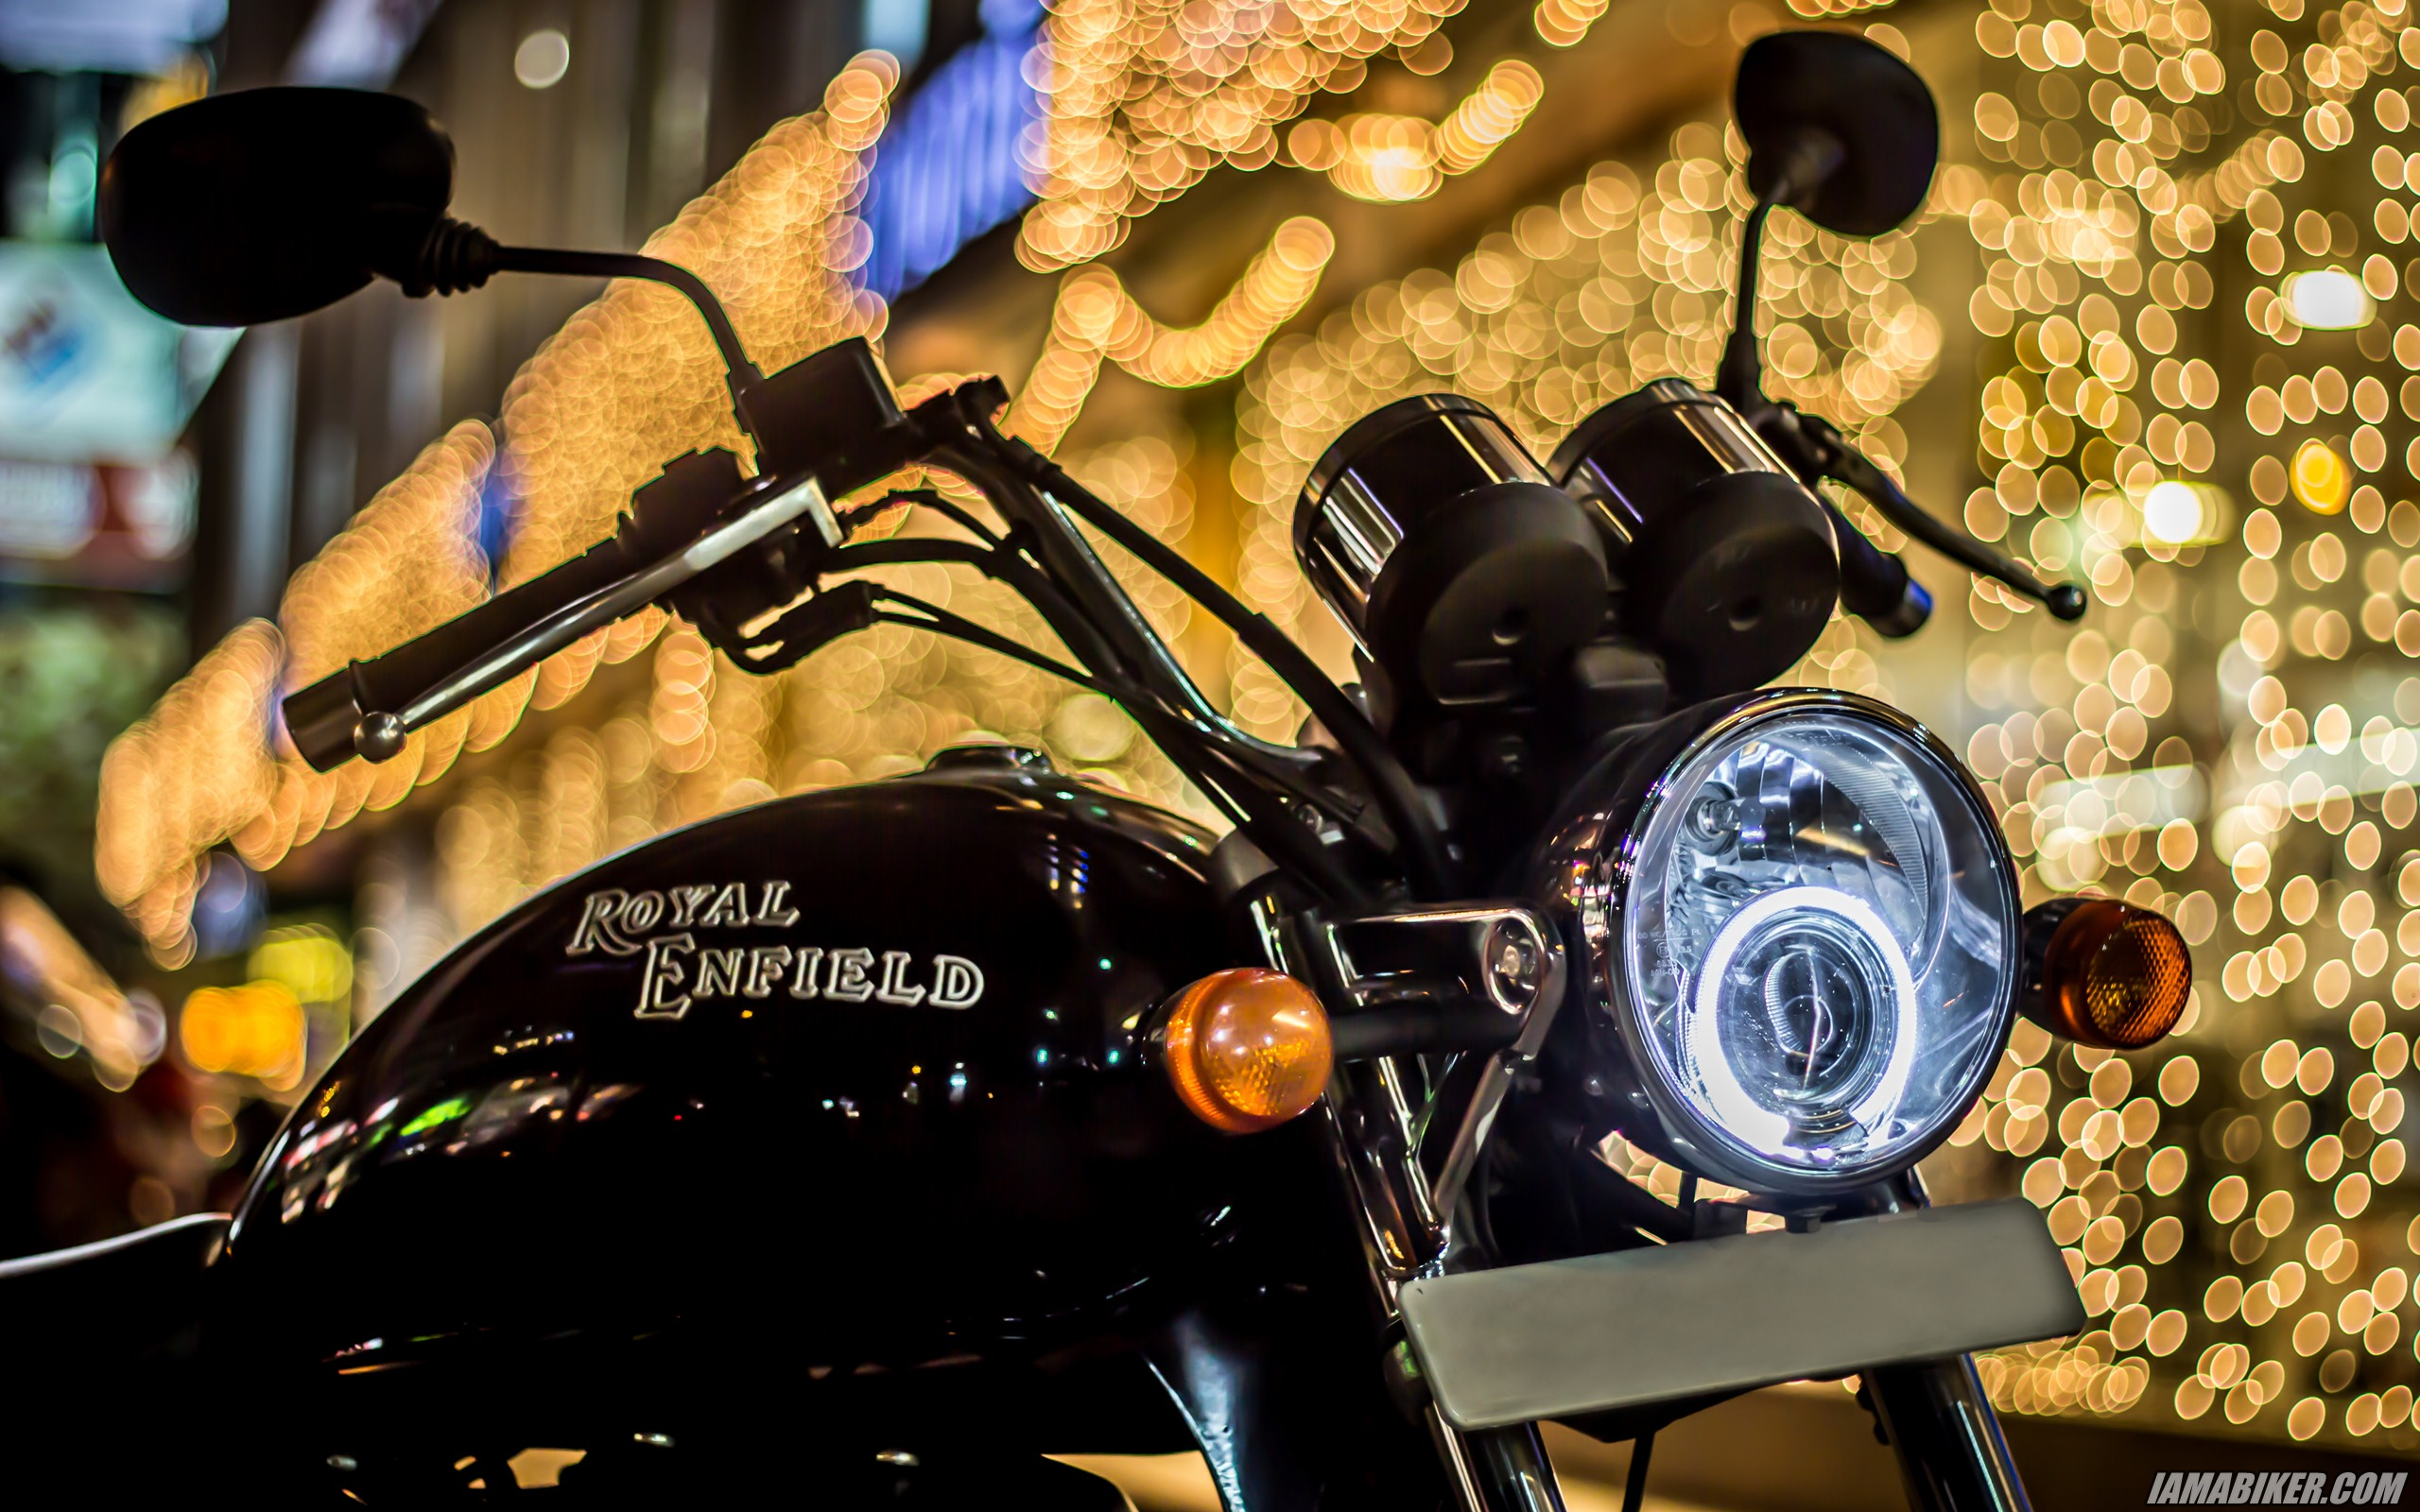 diwali hd wallpapers royal enfield thunderbird 500